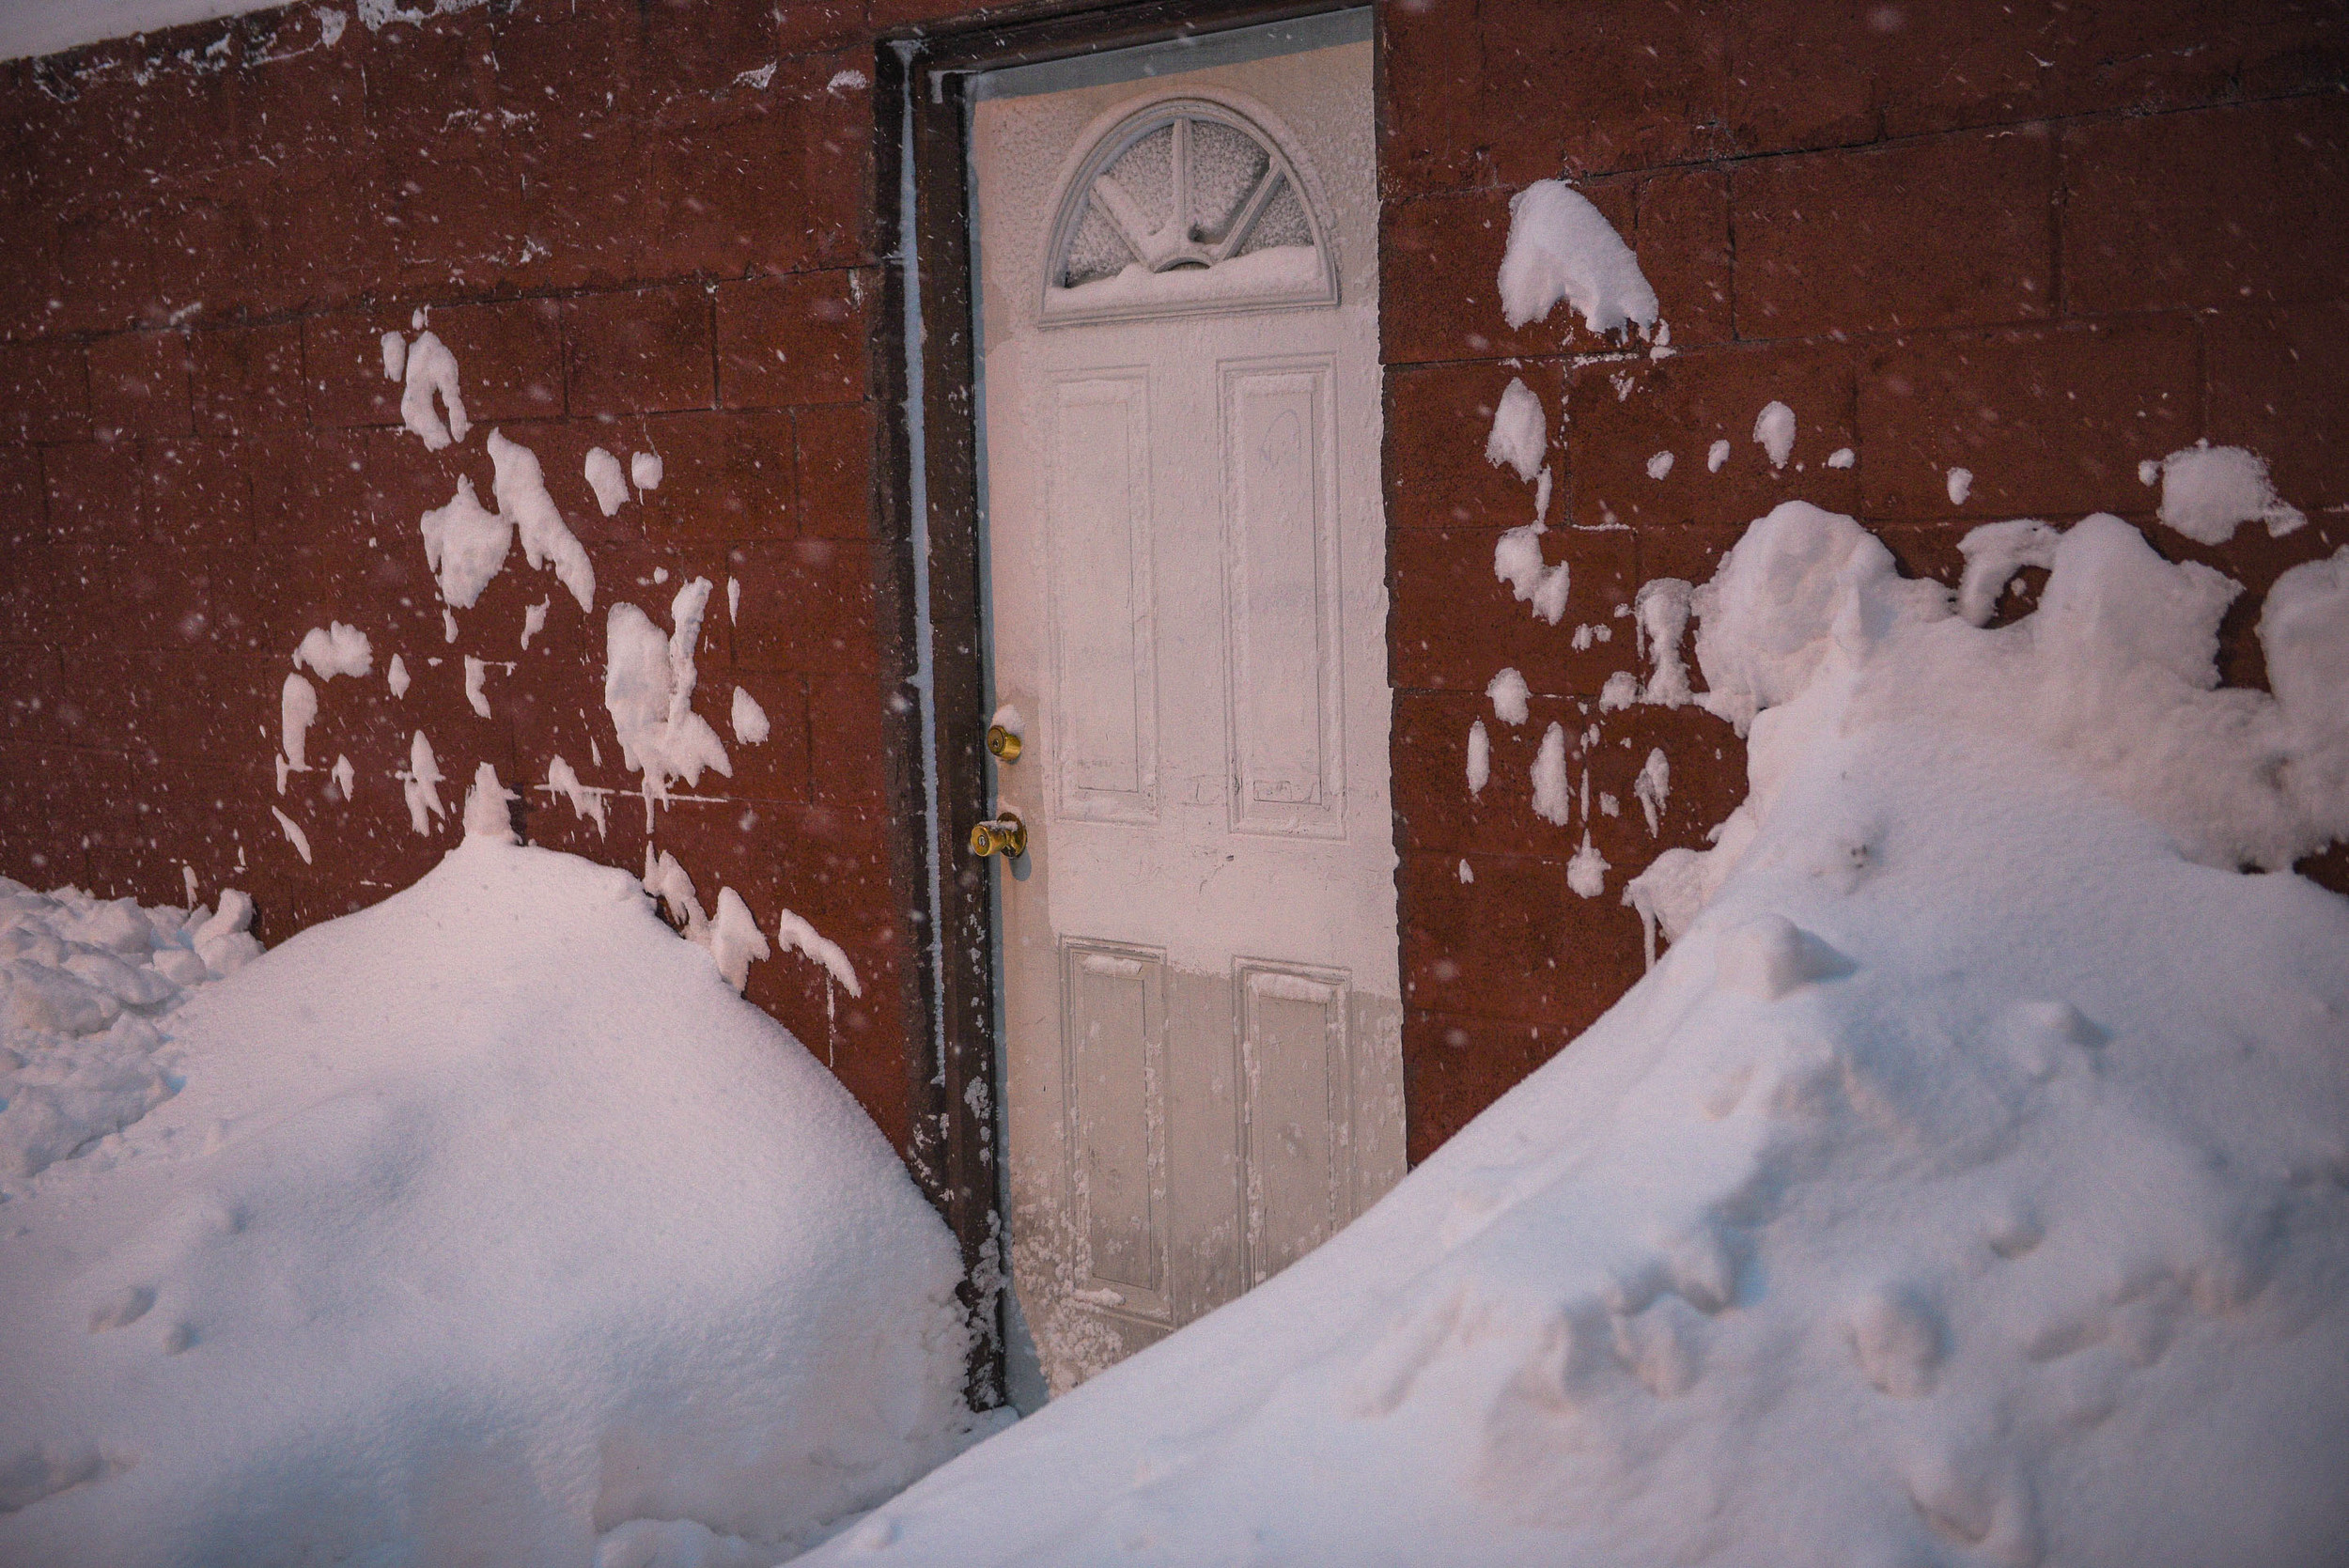 Mountains of snow by a doorway.